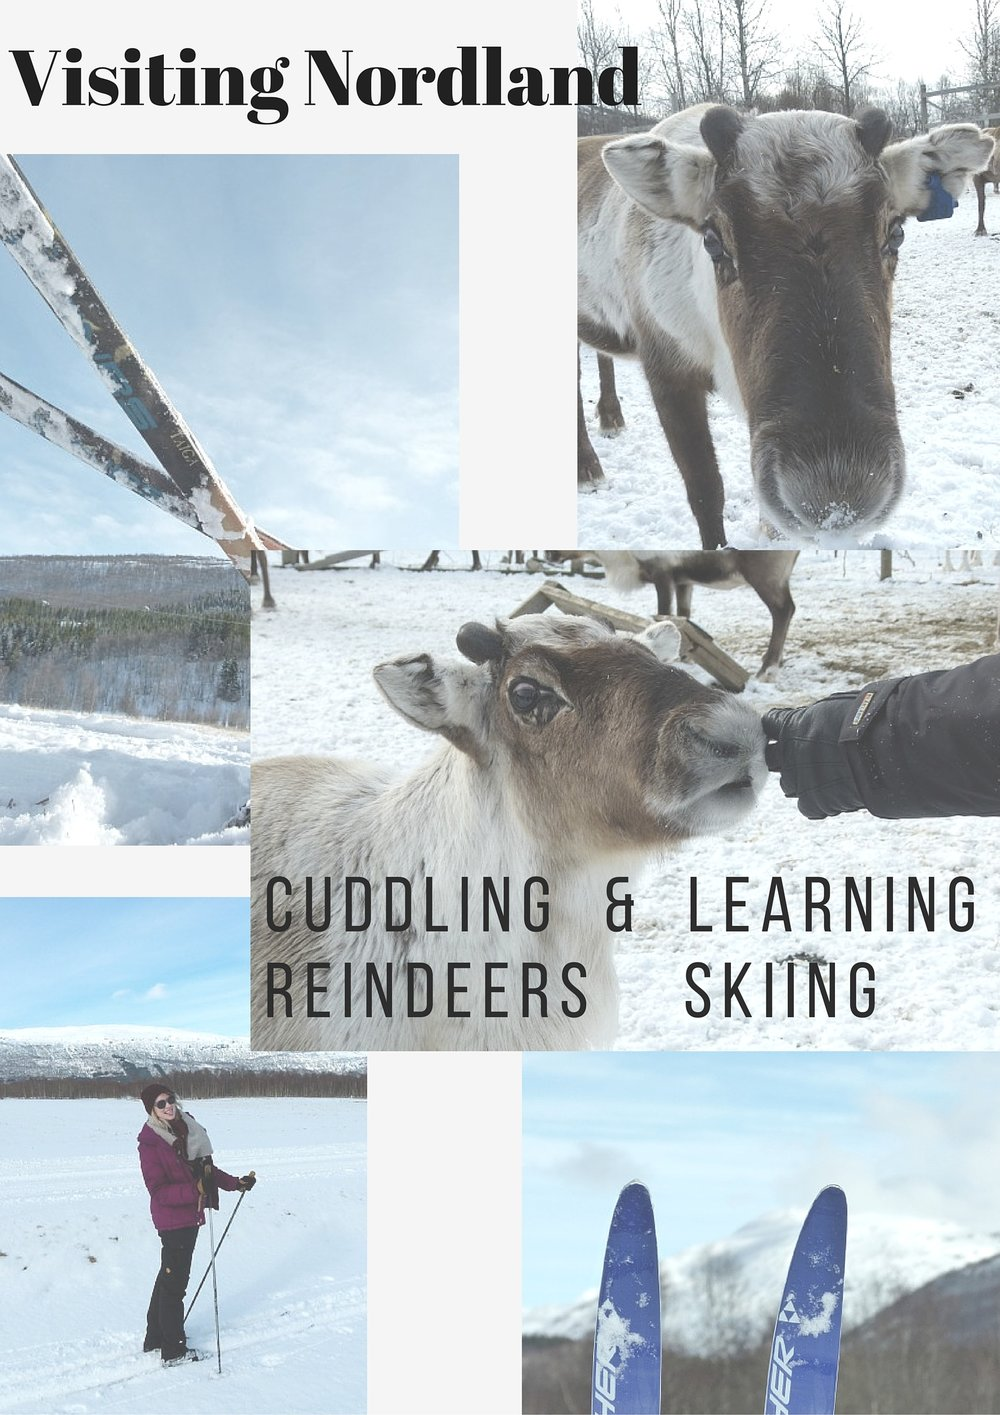 You know what you could do on a holiday in Northern Norway? Learning how to ski and cuddle reindeers!! Interested?